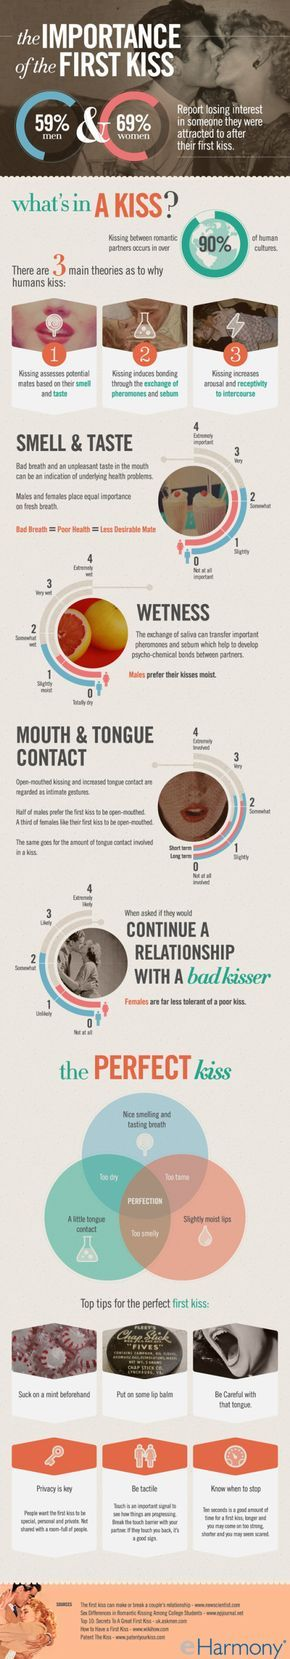 The Importance of the First Kiss, & continued kisses afterwards. The importance of fresh breath, good hygiene & knowing how your partner wants to be kissed & doesn't want to be kissed.